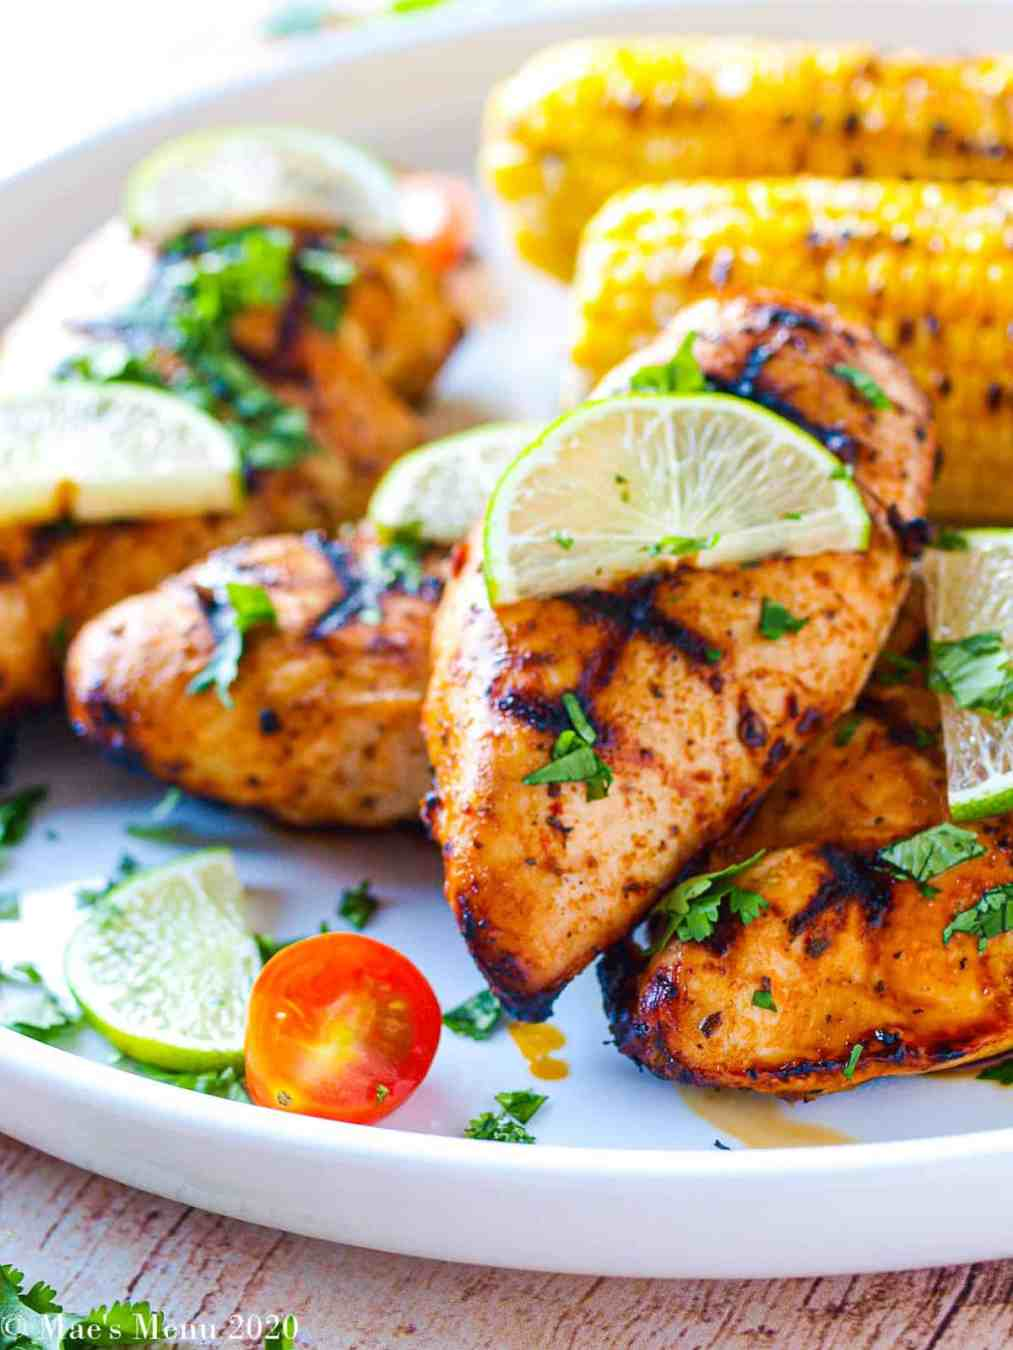 A large white platter with grilled chicken breasts with limes and cilantro on top and sliced tomatoes in front of the chicken. Behind the chicken sits grilled corn.